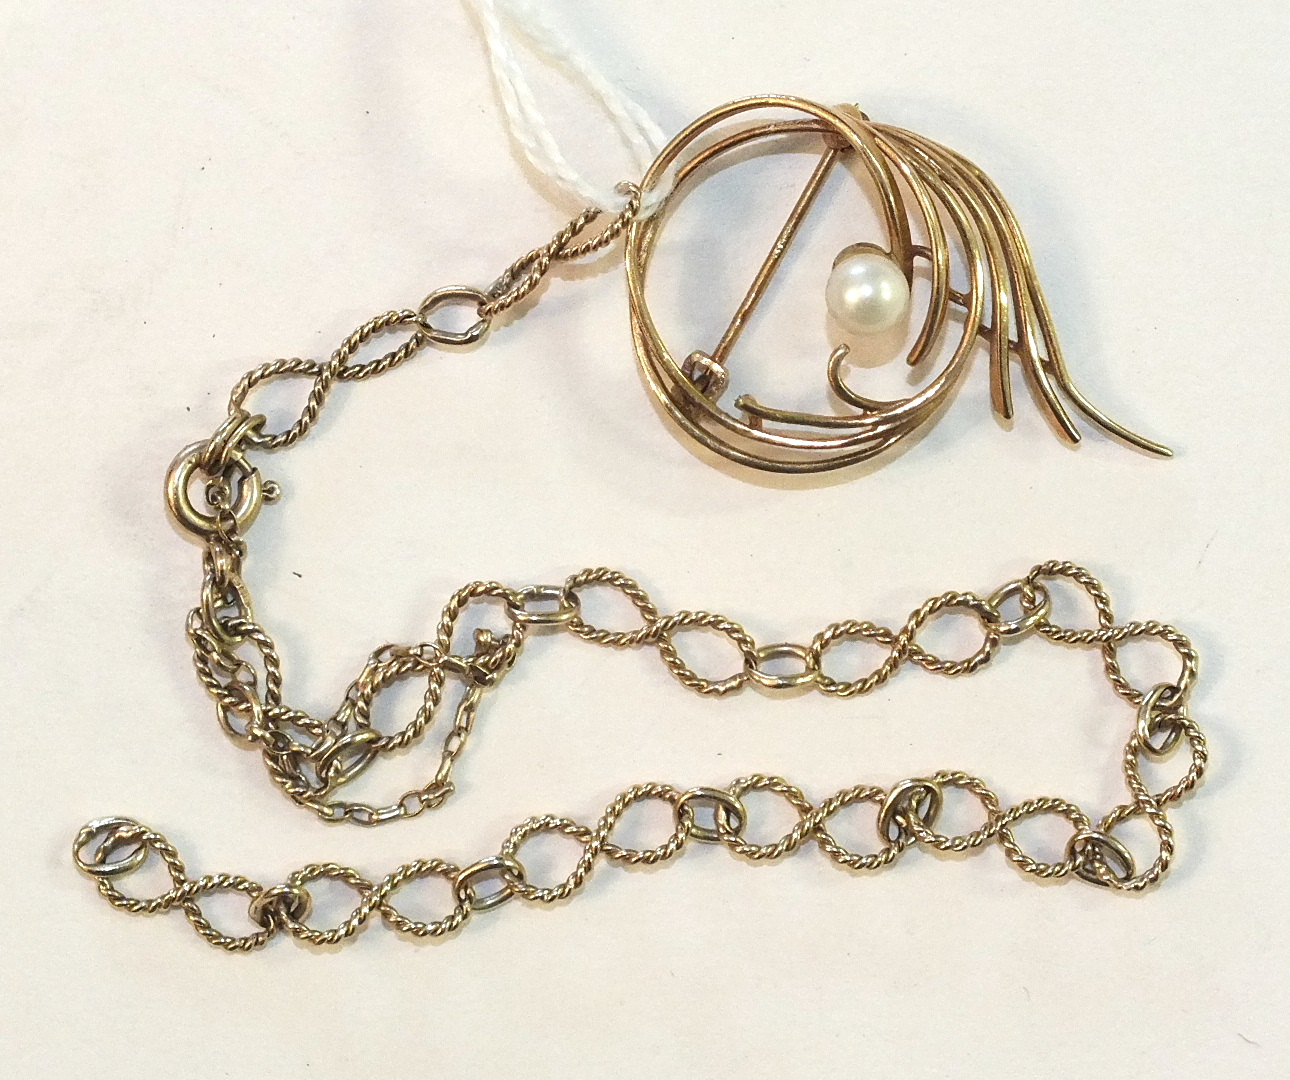 Lot 219 - A 9ct gold brooch set cultured pearl, 2.8g and a 9ct gold fancy-link bracelet, (a/f), 3.8g, (2).